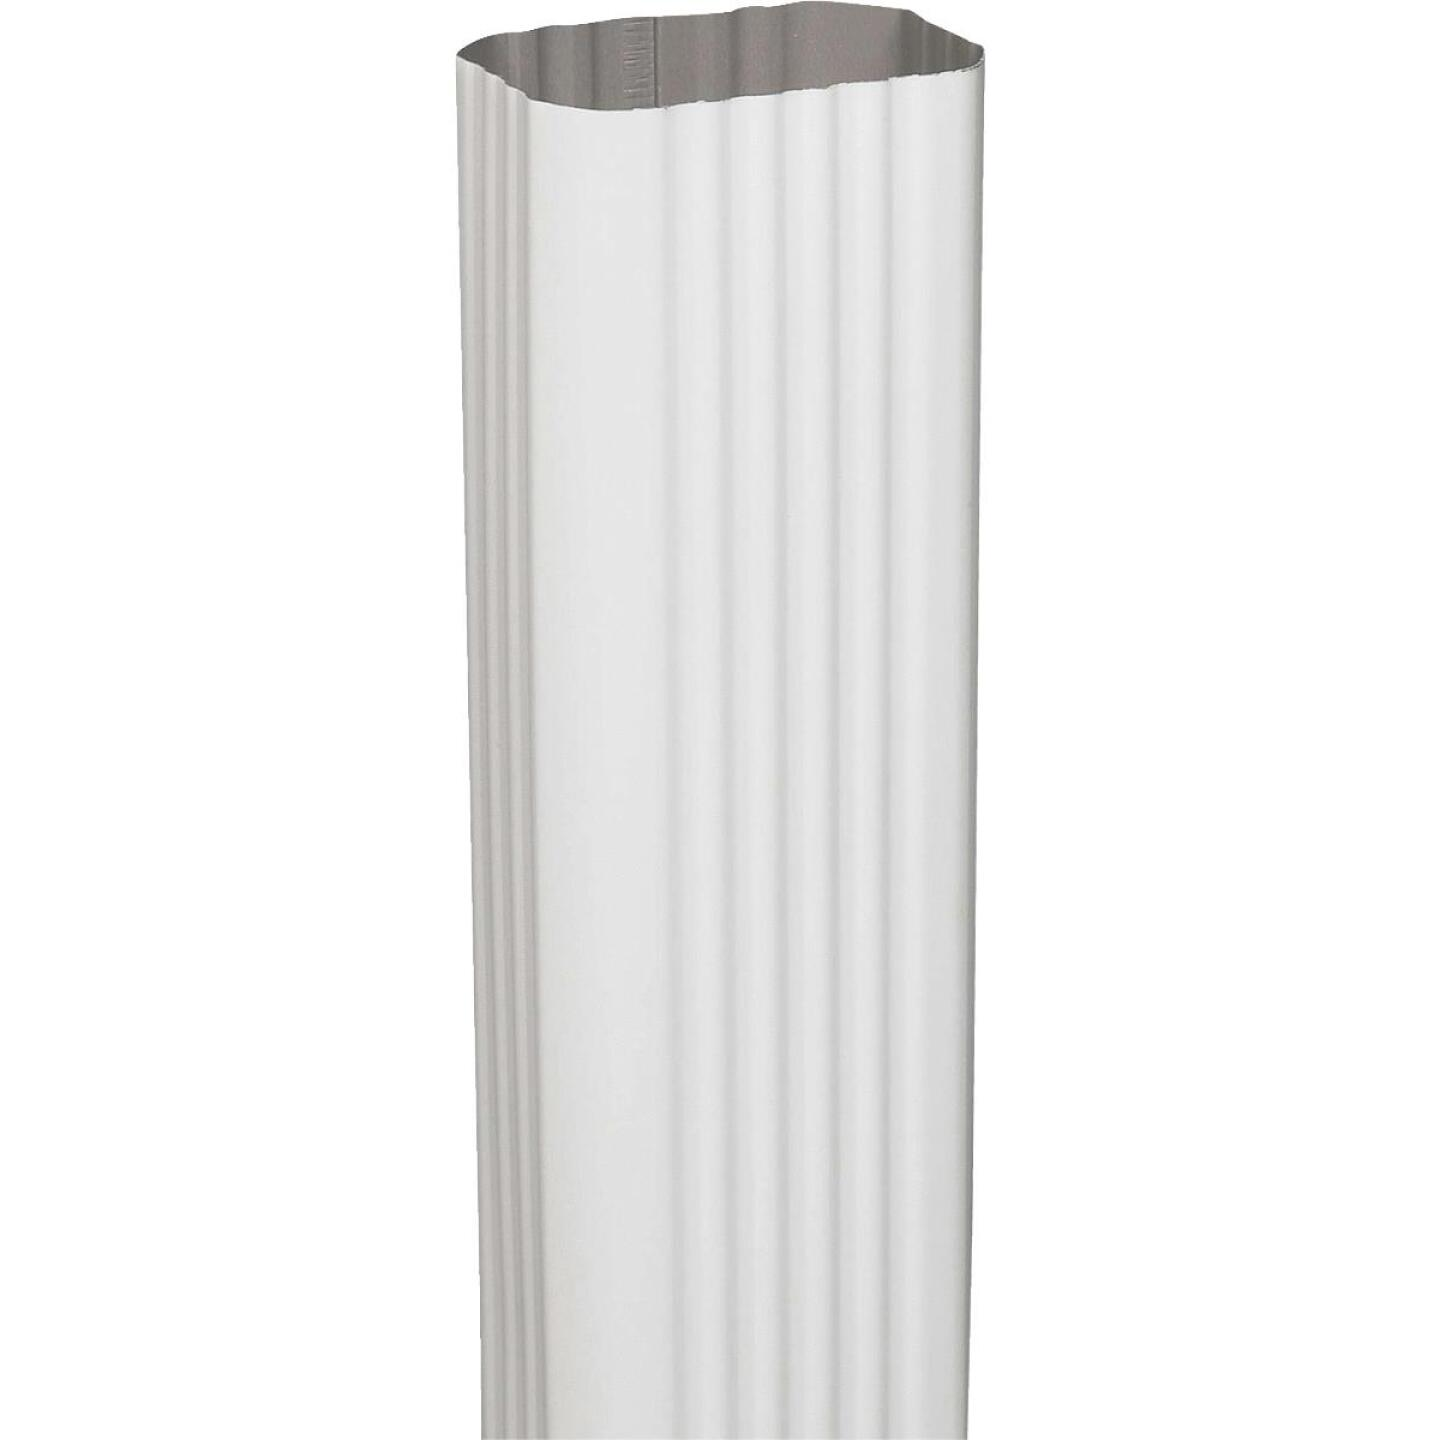 Spectra Metals 2 In. x 3 In. x 15 In. K-Style White Aluminum Downspout Extension Image 1